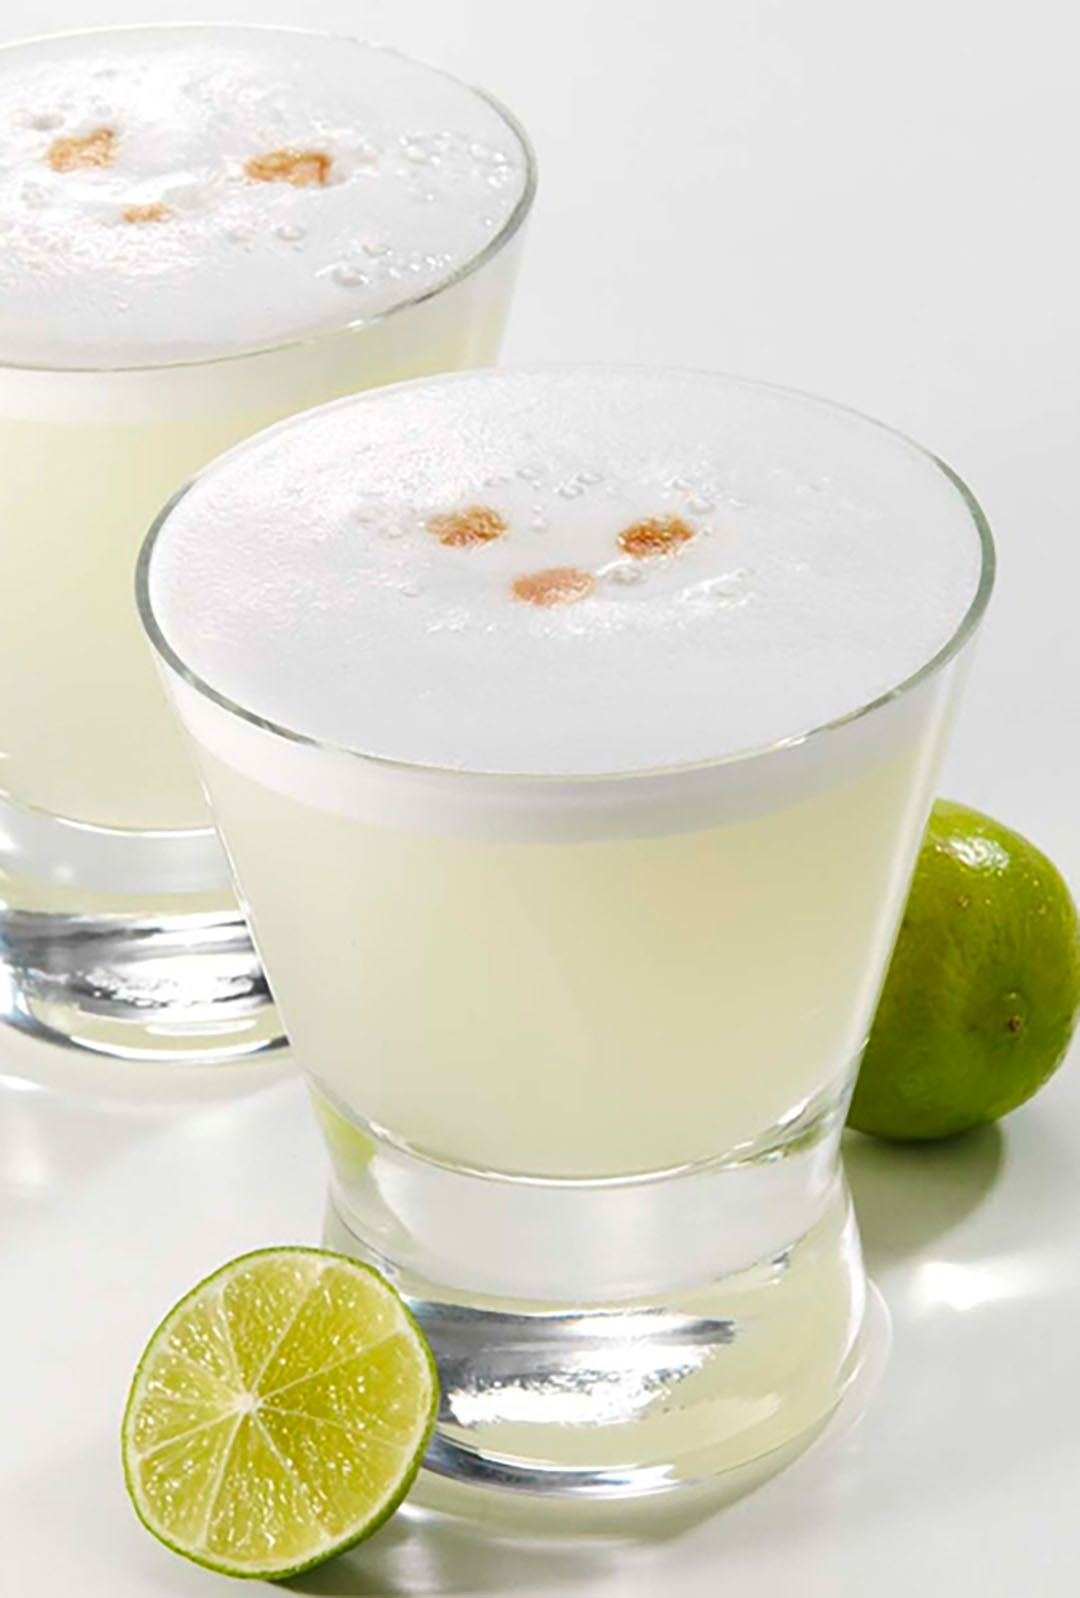 Around The World In Cocktails And Spirits The Blonde Abroad Pisco Sour Pisco Sour Cocktail